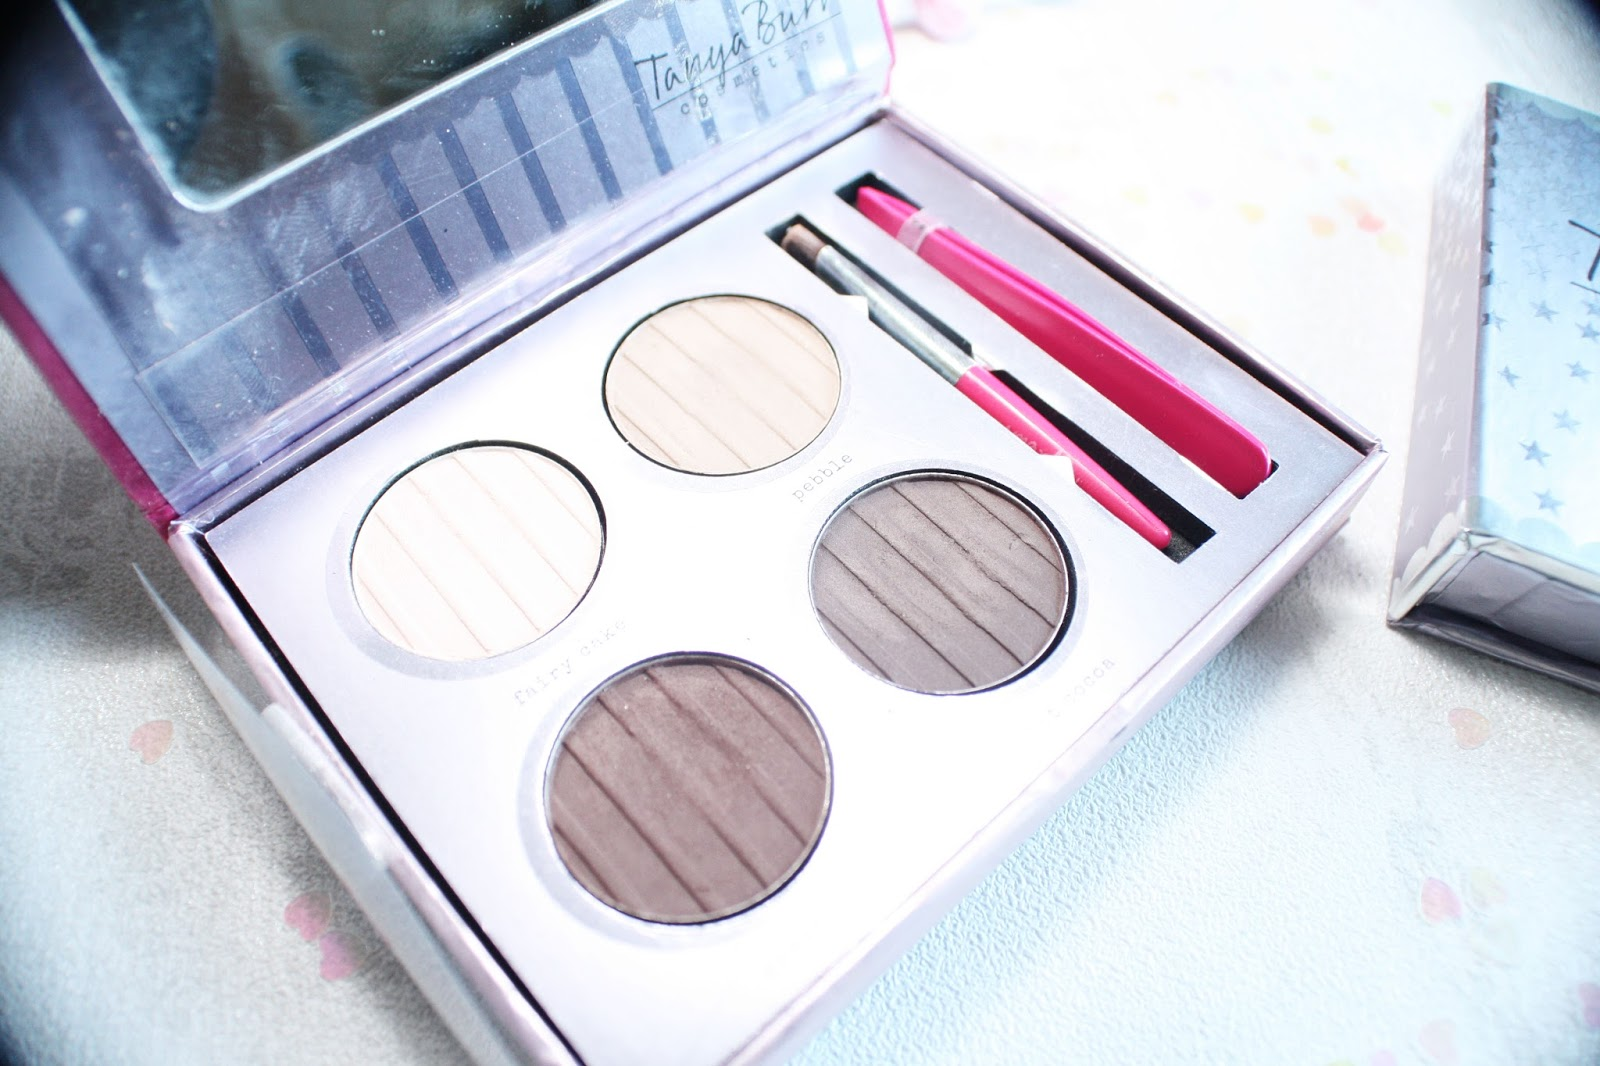 lebellelavie - Trying out some Tanya Burr Cosmetics palettes